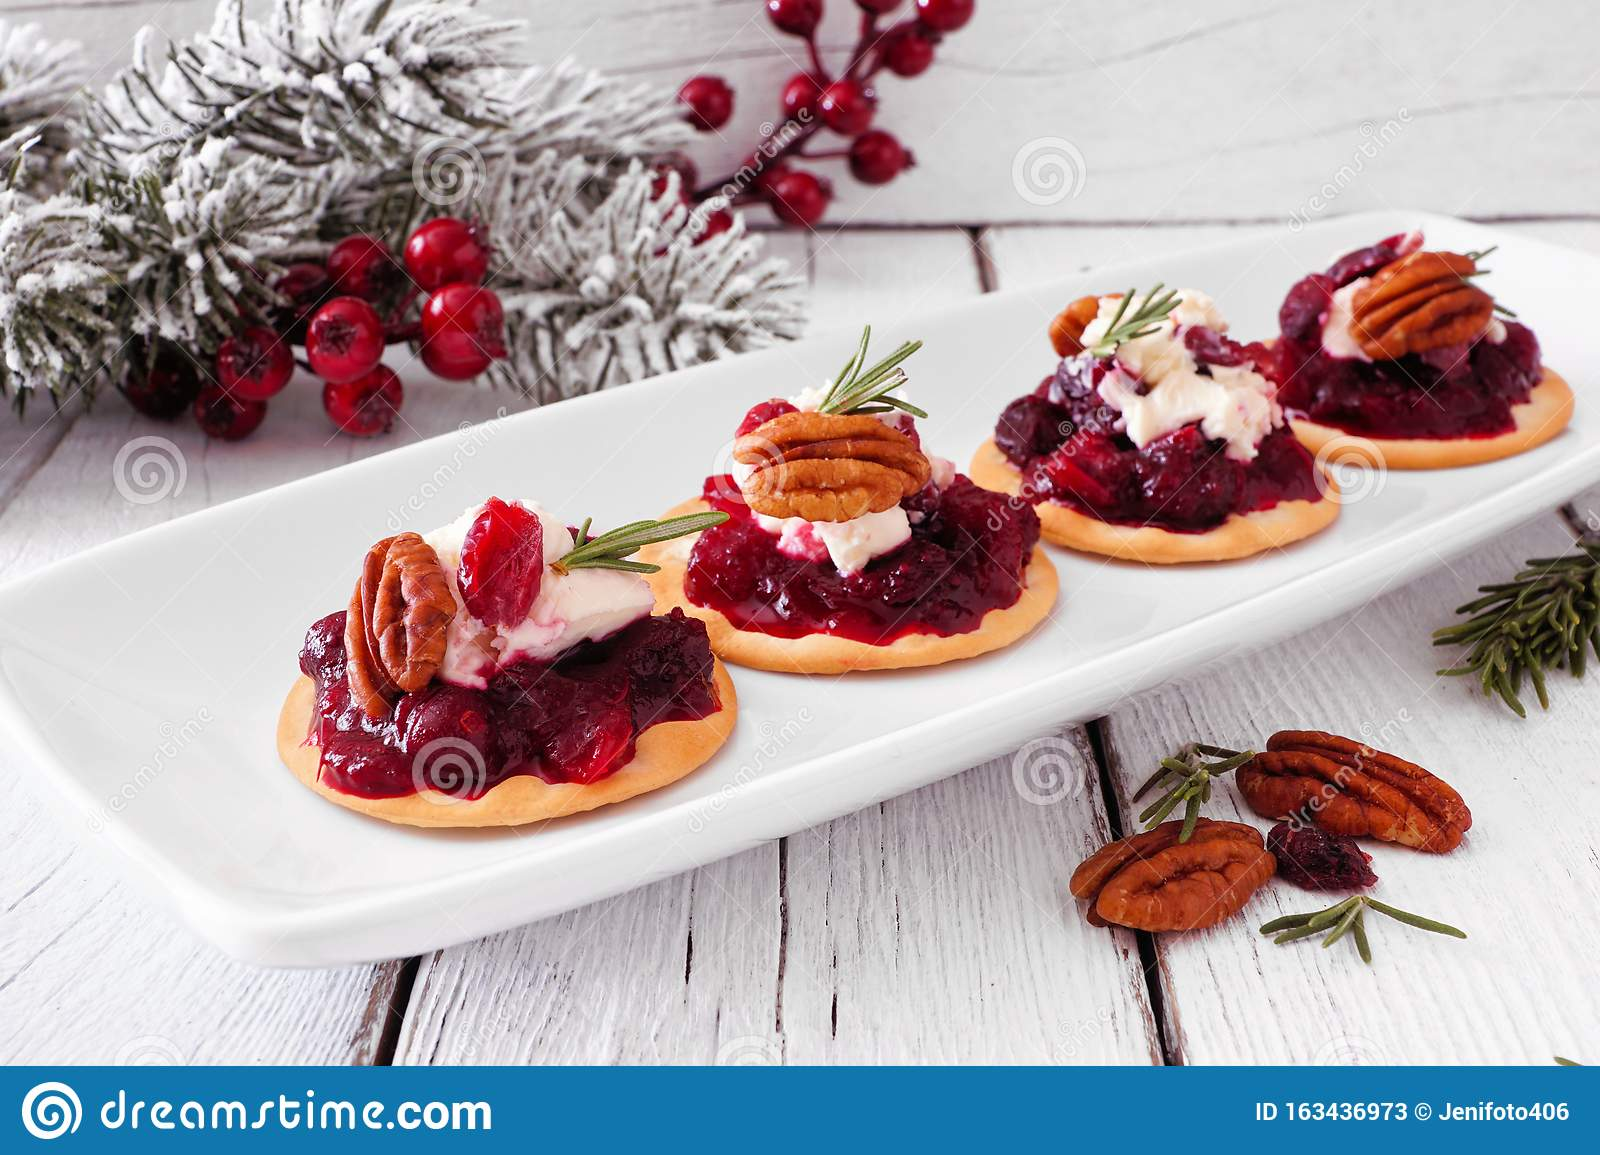 Holiday appetizers with cranberries, goat cheese and pecans on a serving plate, close up against white wood